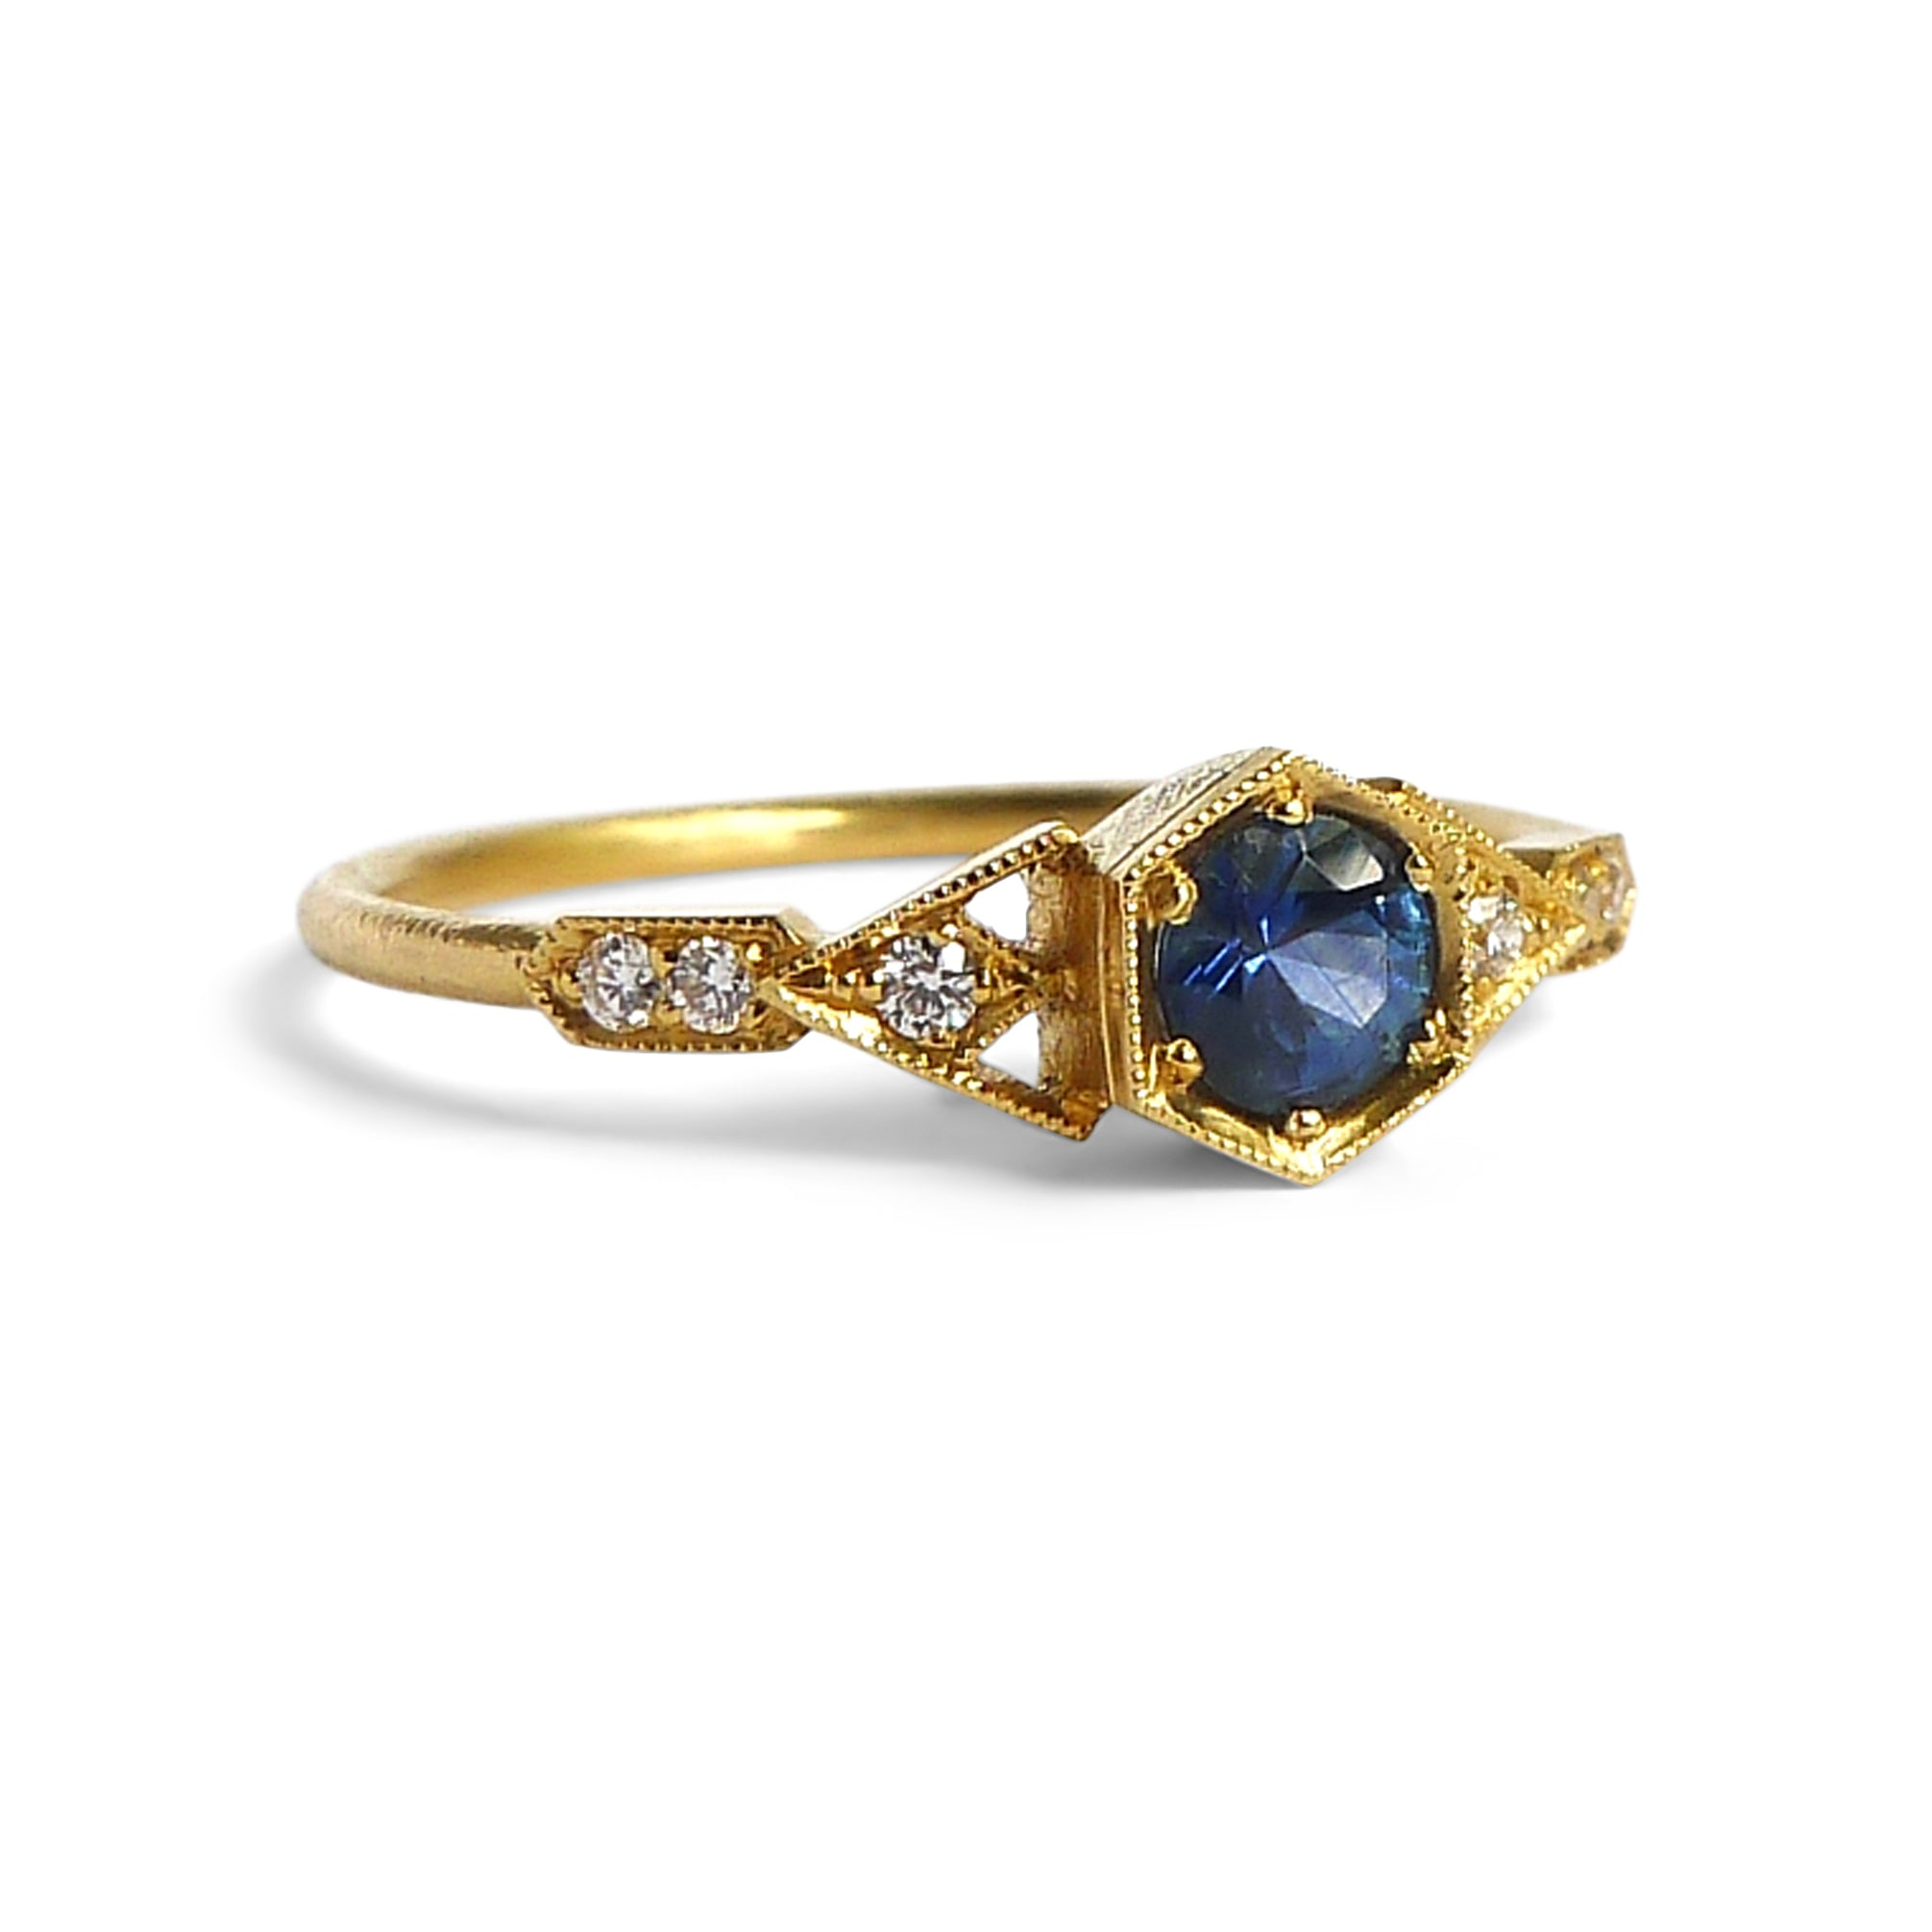 Abris Vestra Ring with Blue Sapphire